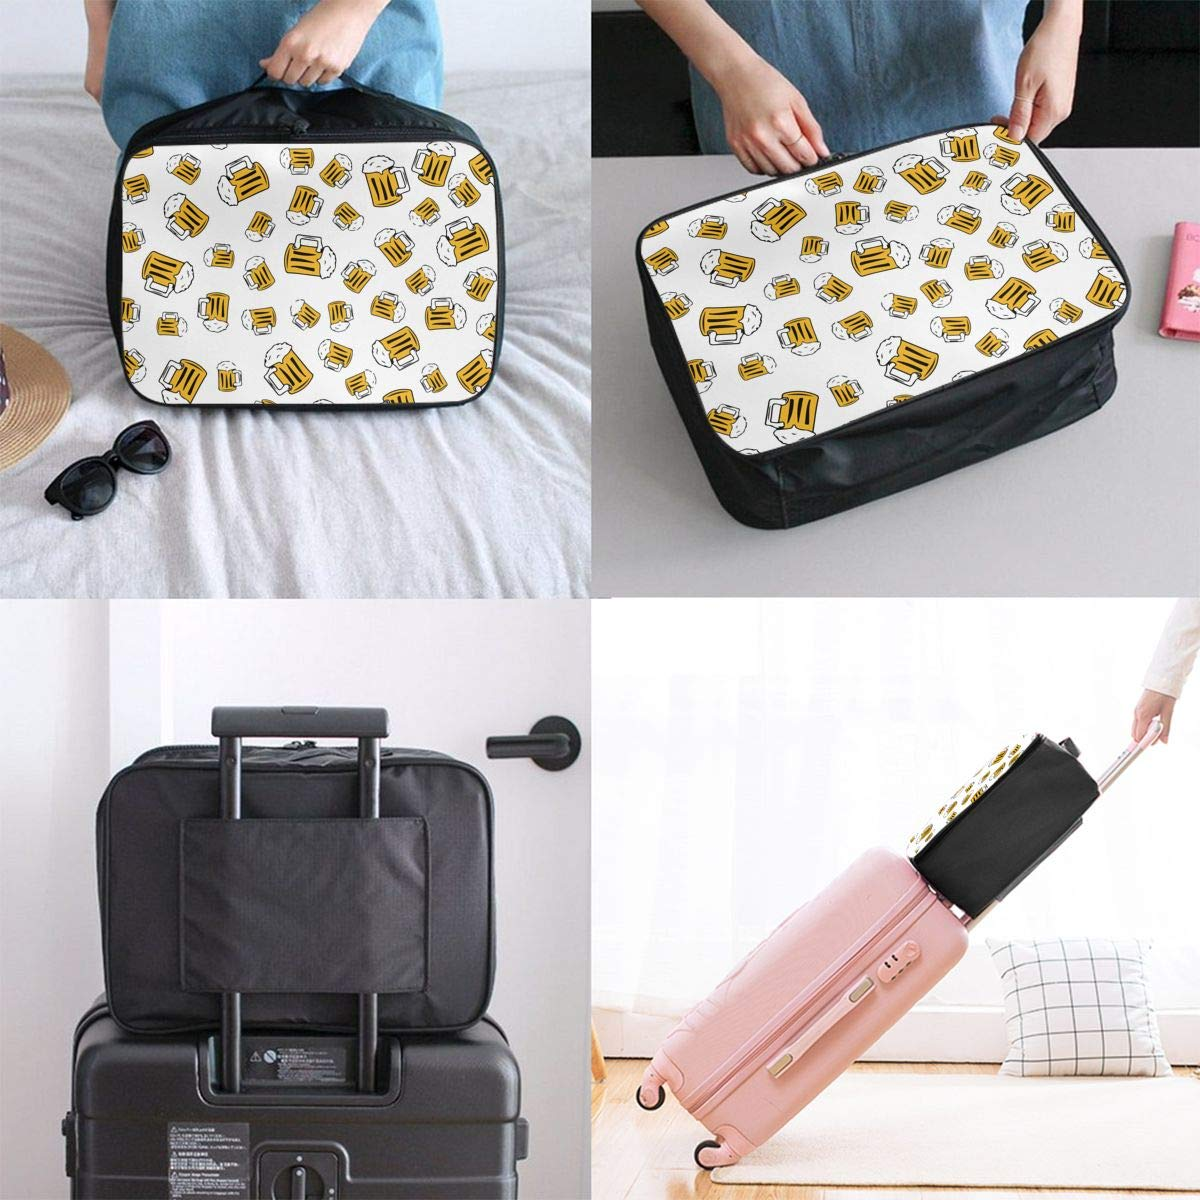 Bernese Mountain Dog Perfect Travel Partner Large Capacity Travel Luggage Storage Bag Sleeve For Suitcase Trolley Handles Travel Duffel Tote Bag